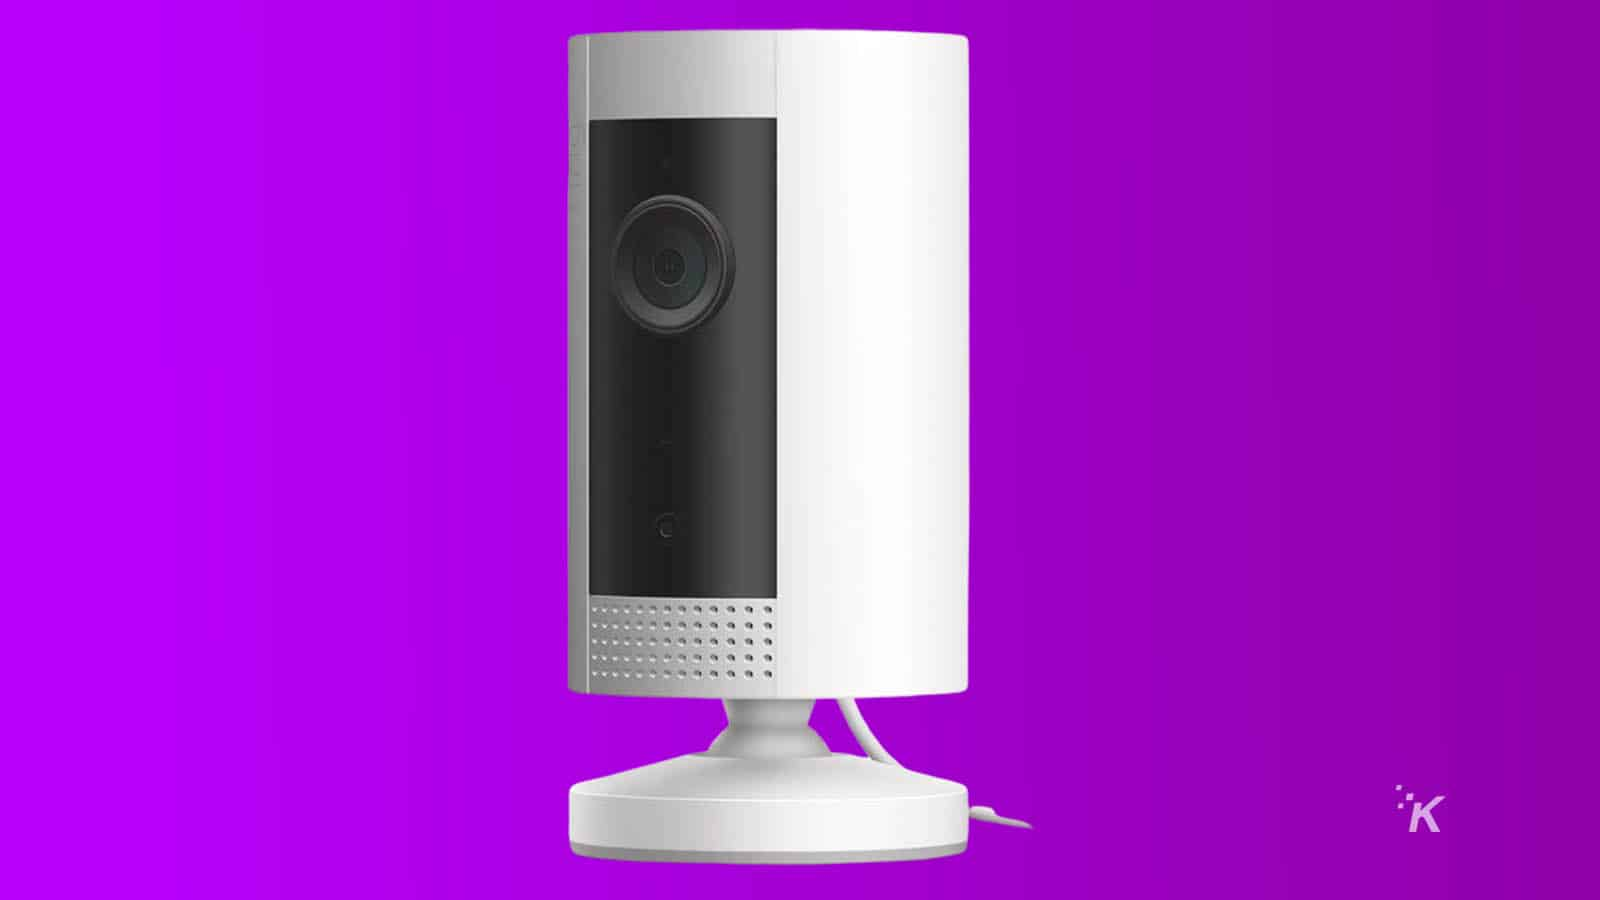 ring indoor camera